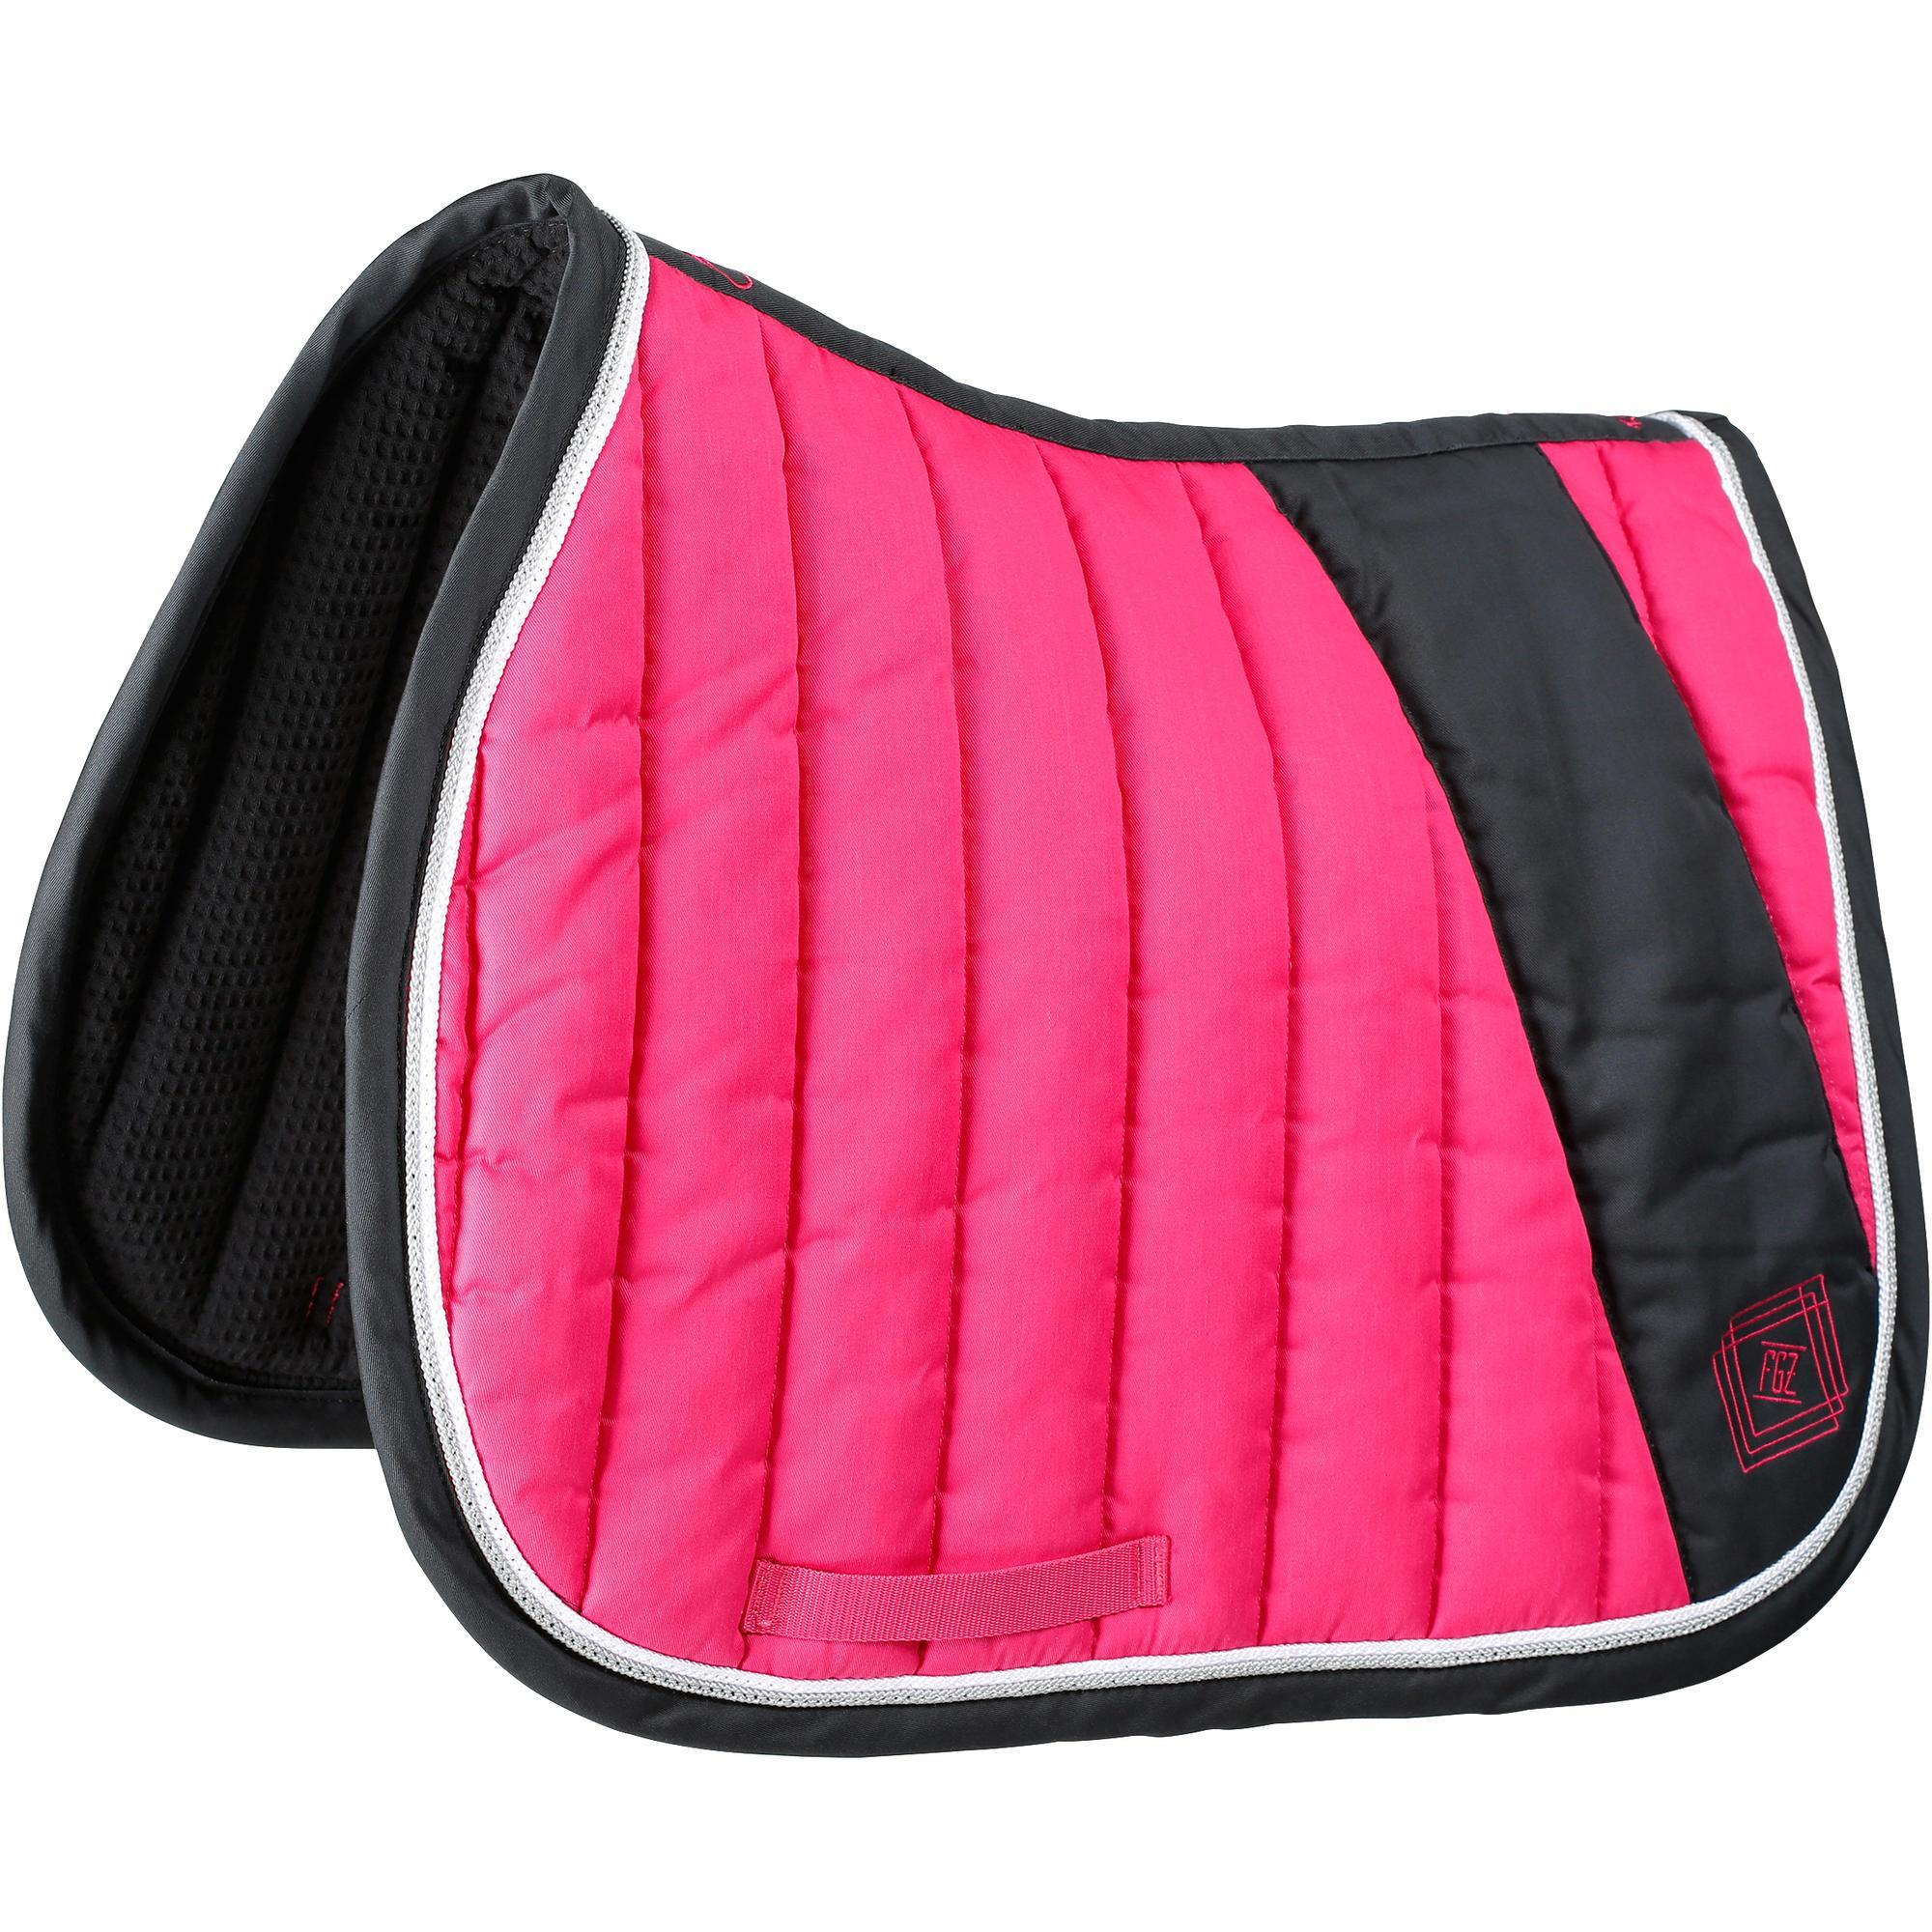 Tapis de selle quitation cheval jump rose fouganza - Tapis decathlon equitation ...